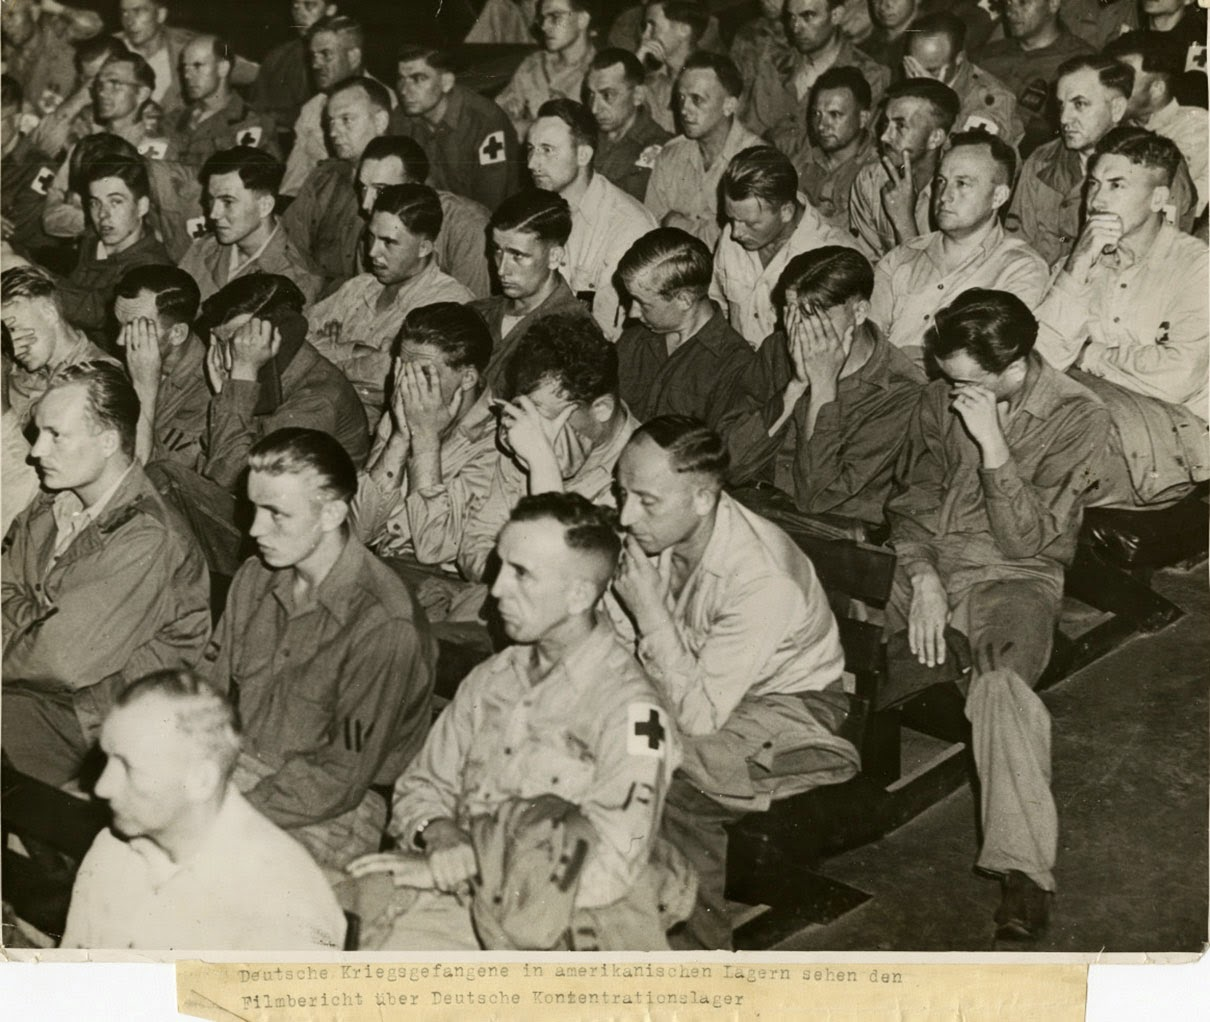 German soldiers react to footage of concentration camps 1945